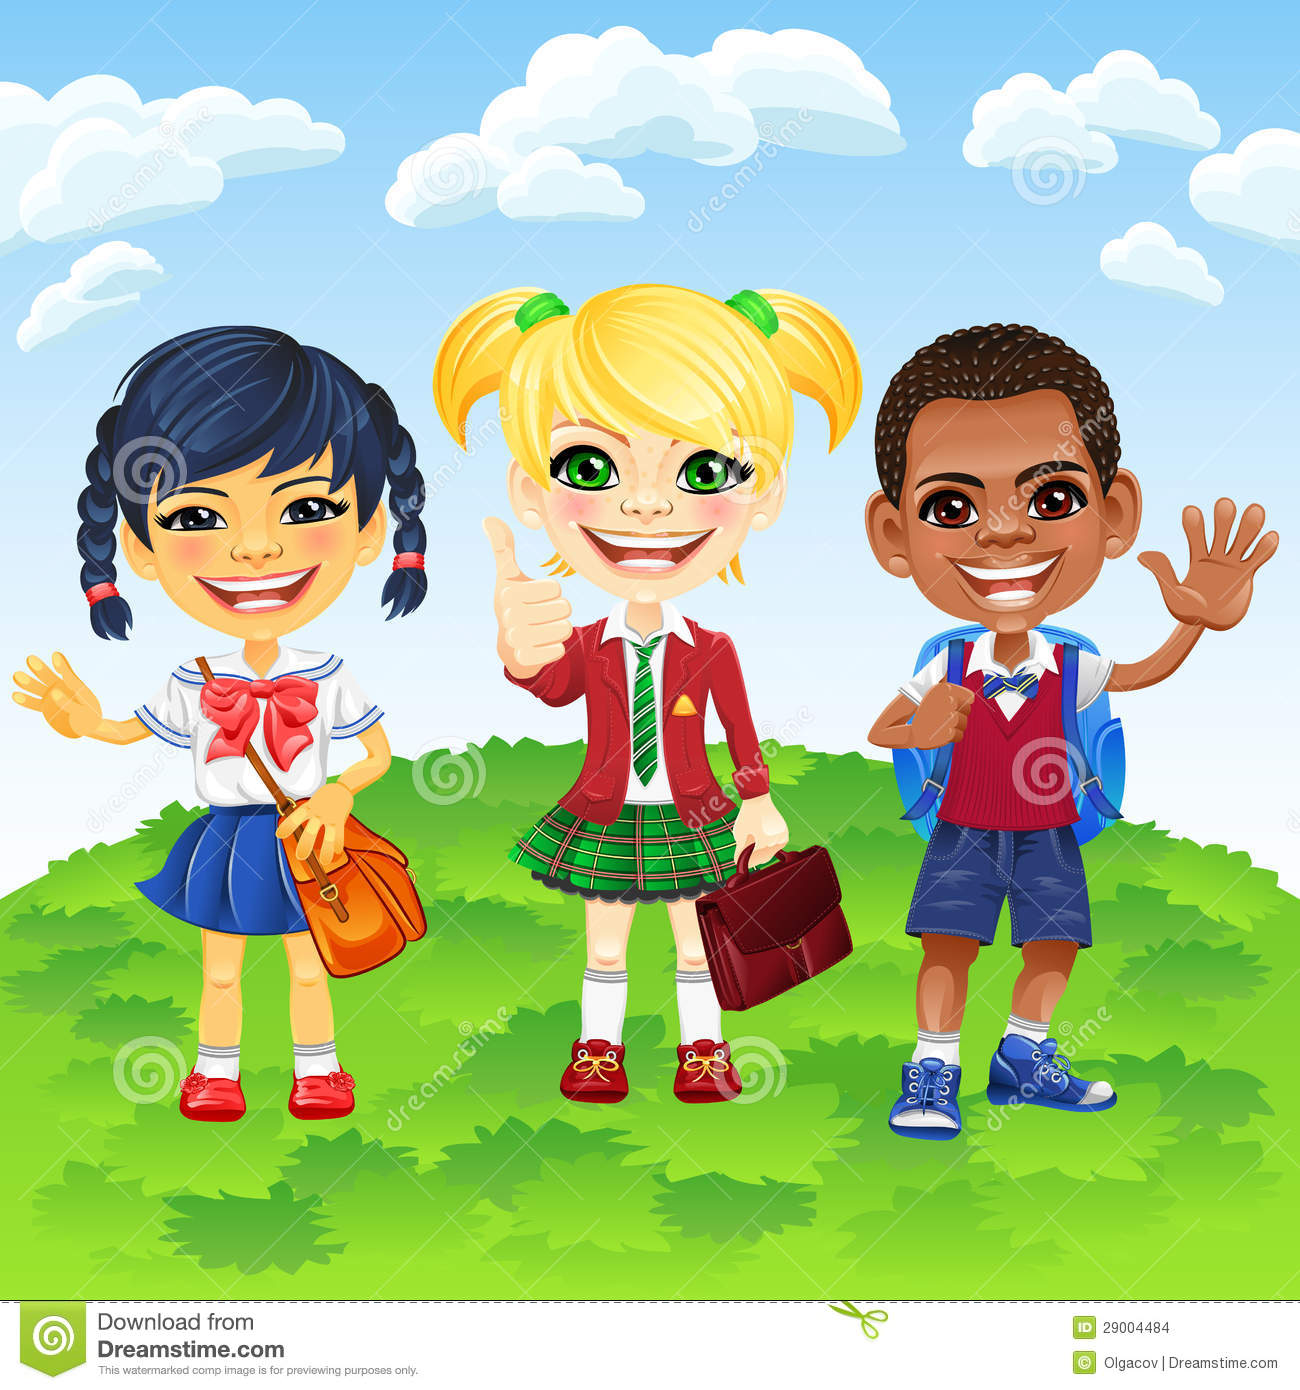 https://thumbs.dreamstime.com/z/vector-schoolchildren-different-nationalities-29004484.jpg